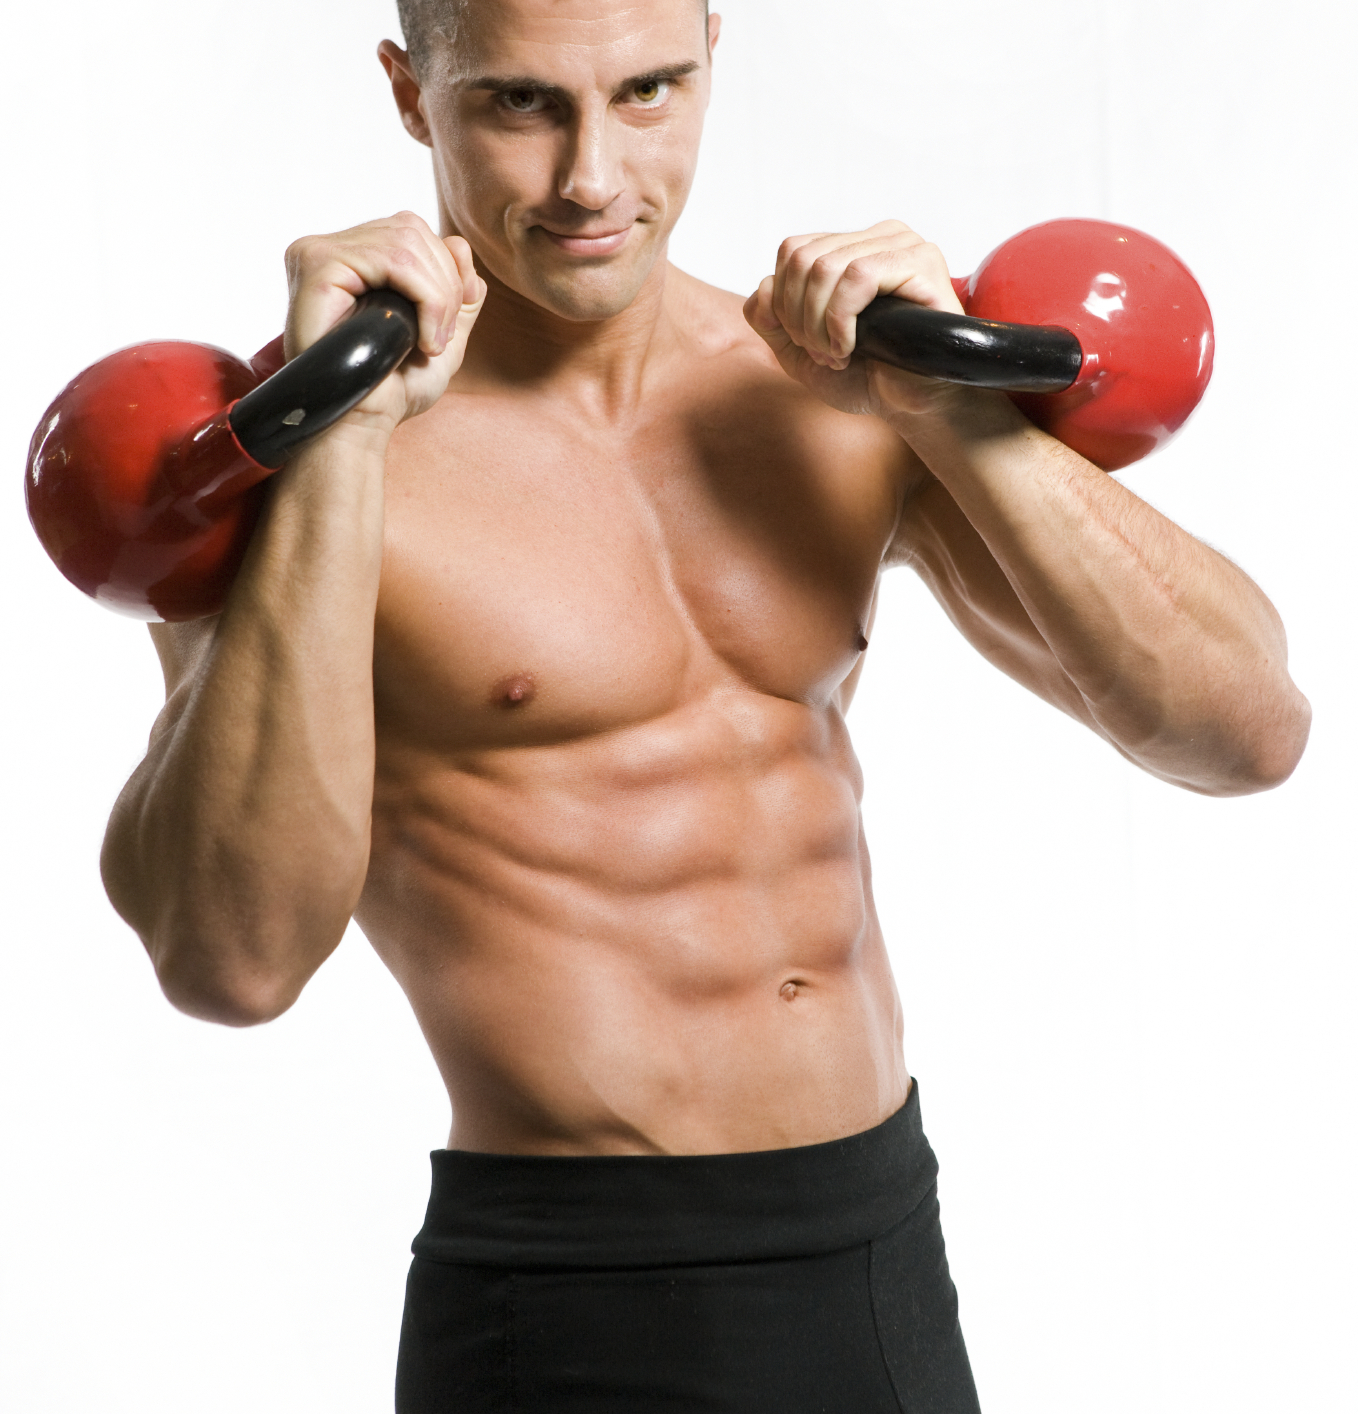 Kettlebell Training Benefits: Warning: Kettlebells Are Dangerous